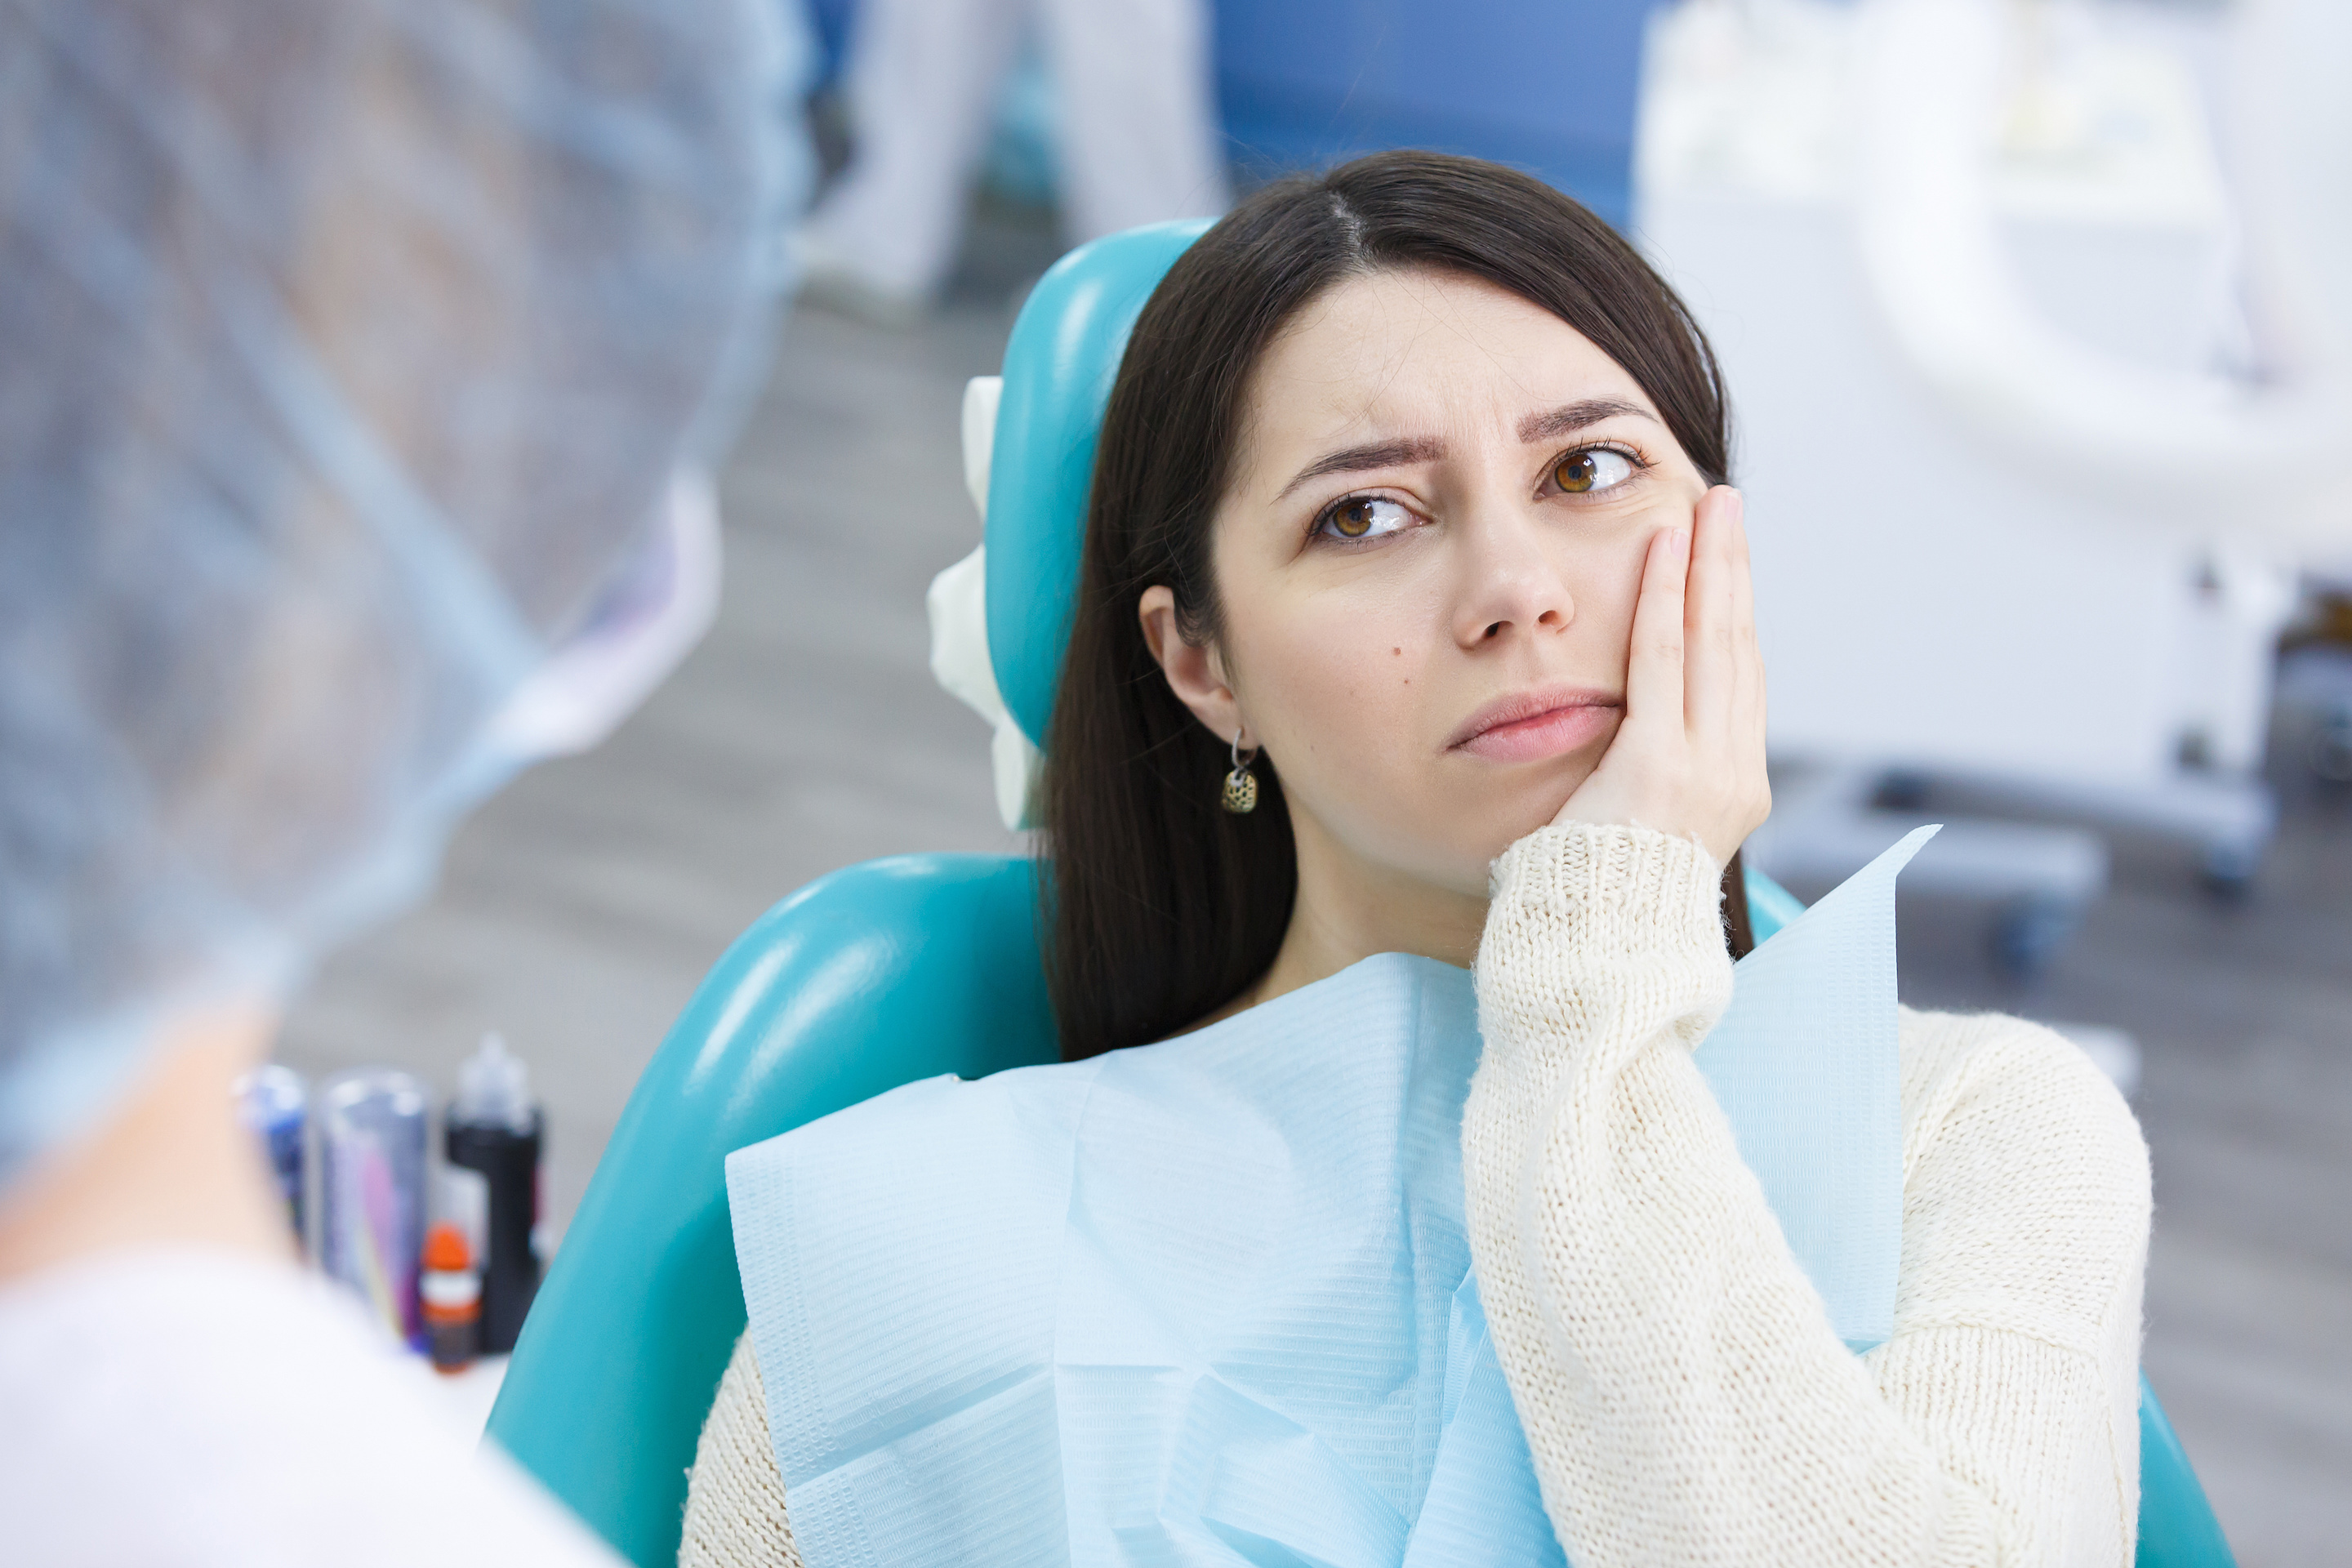 Woman at dentist with root canal pain